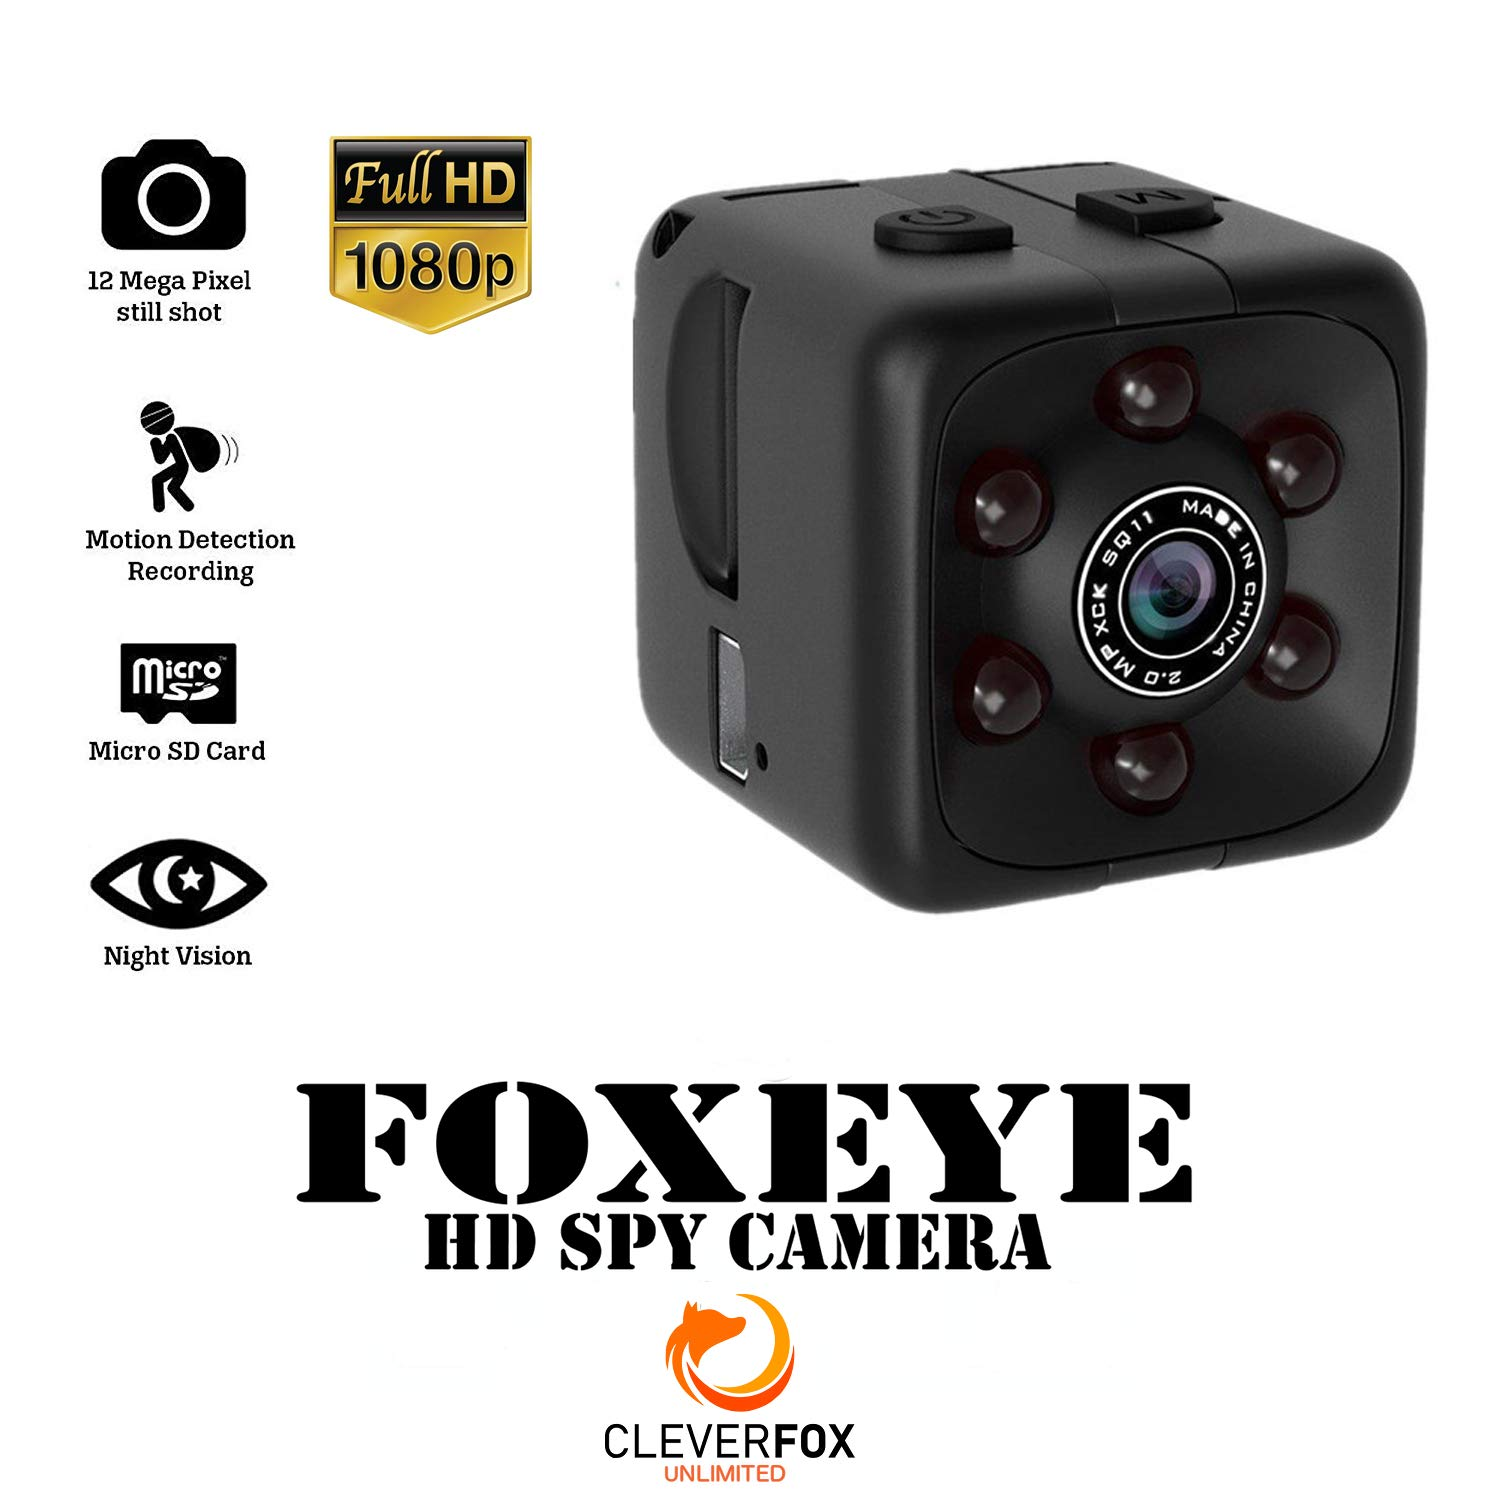 Mini Spy Camera with Audio, 1080p Mini Hidden Spy Cam, Security Cube Camera Recorder, HD, Night Vision and Motion Detection for Home Surveillance, Nanny Cam, Cars, Office, Drones, Outdoor, Body Cams by CleverFox Unlimited